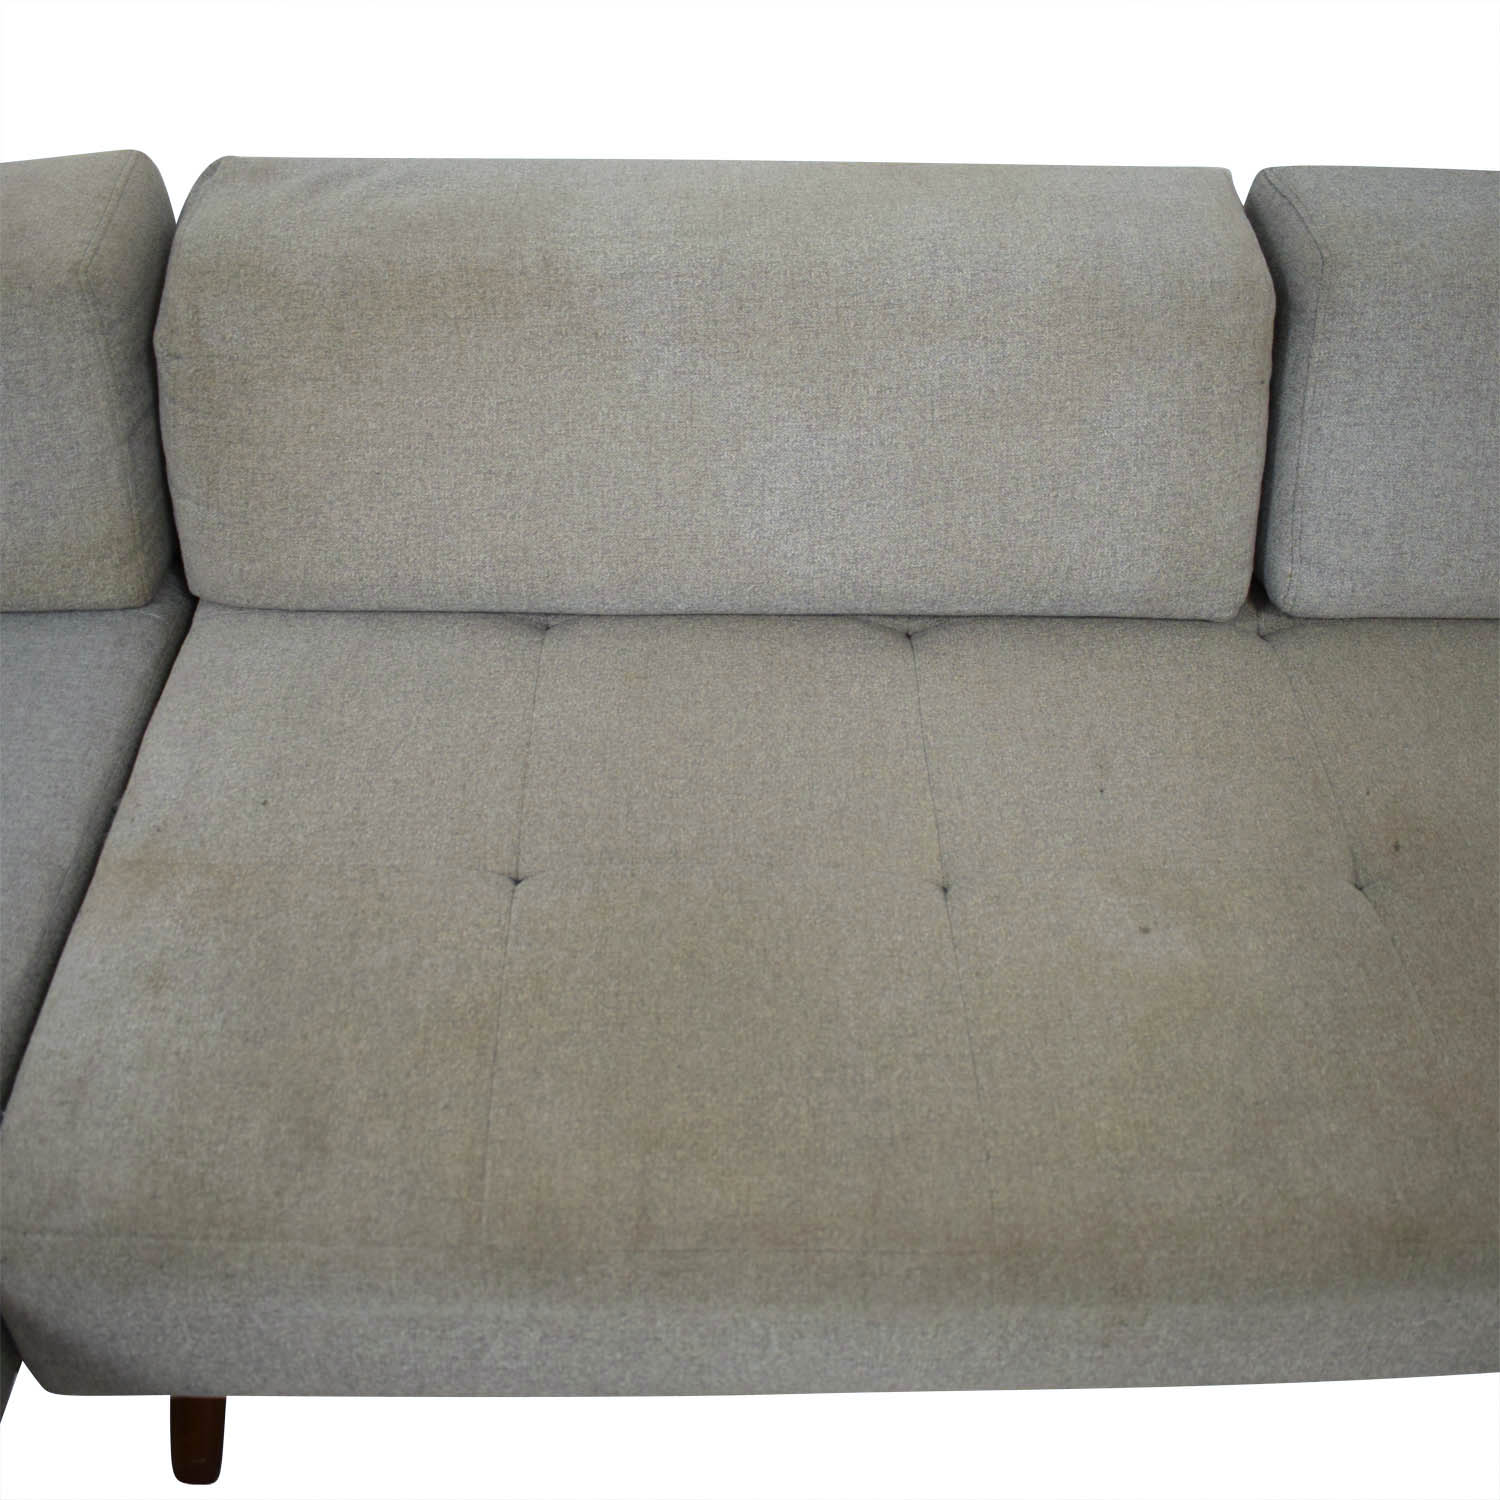 West Elm West Elm Sectional Couch Sofas